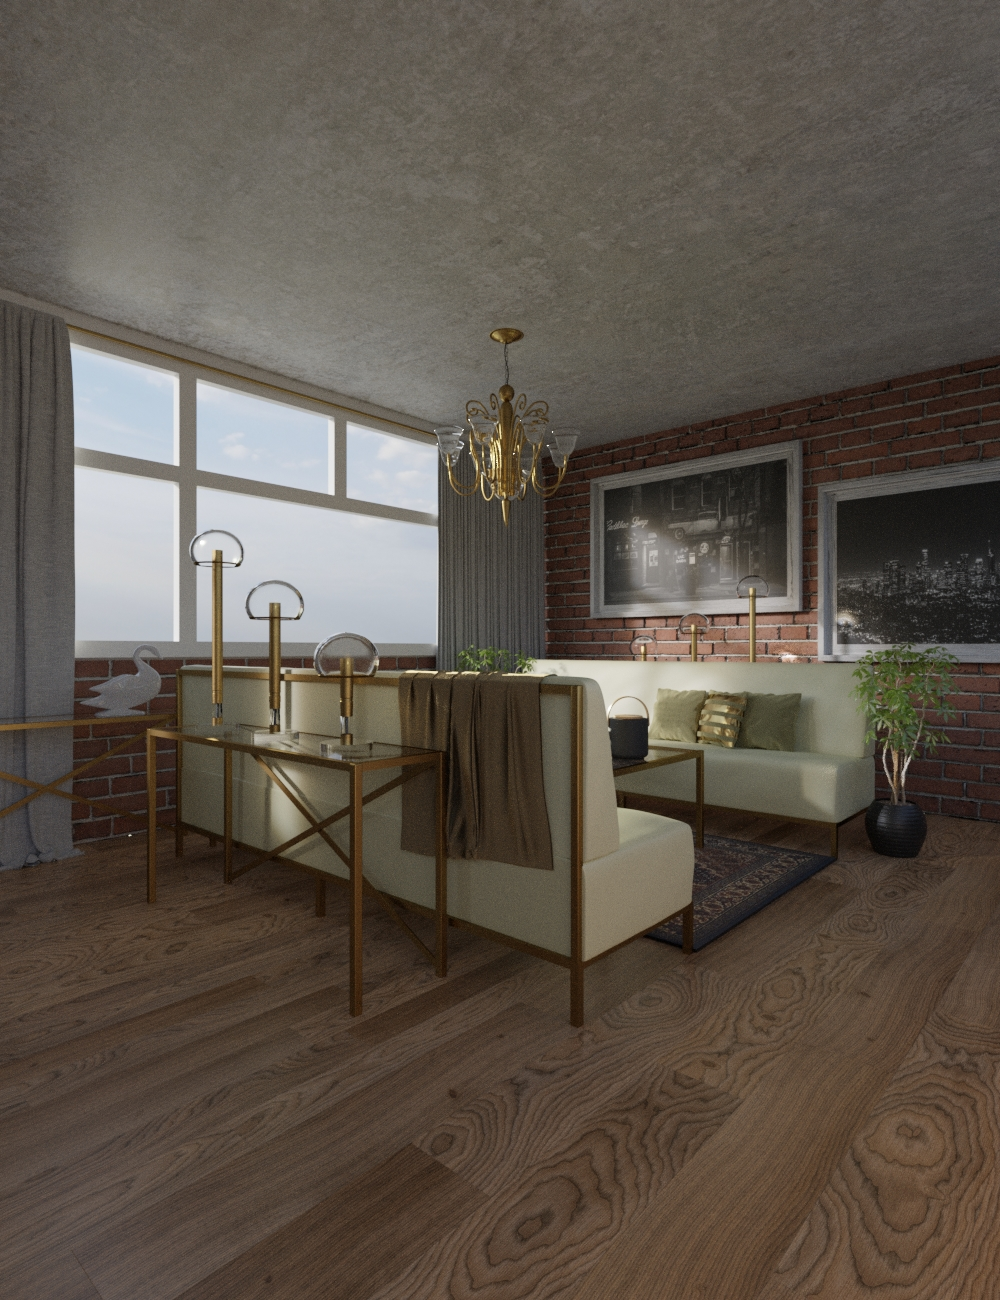 Emerald Room by: Illumination, 3D Models by Daz 3D